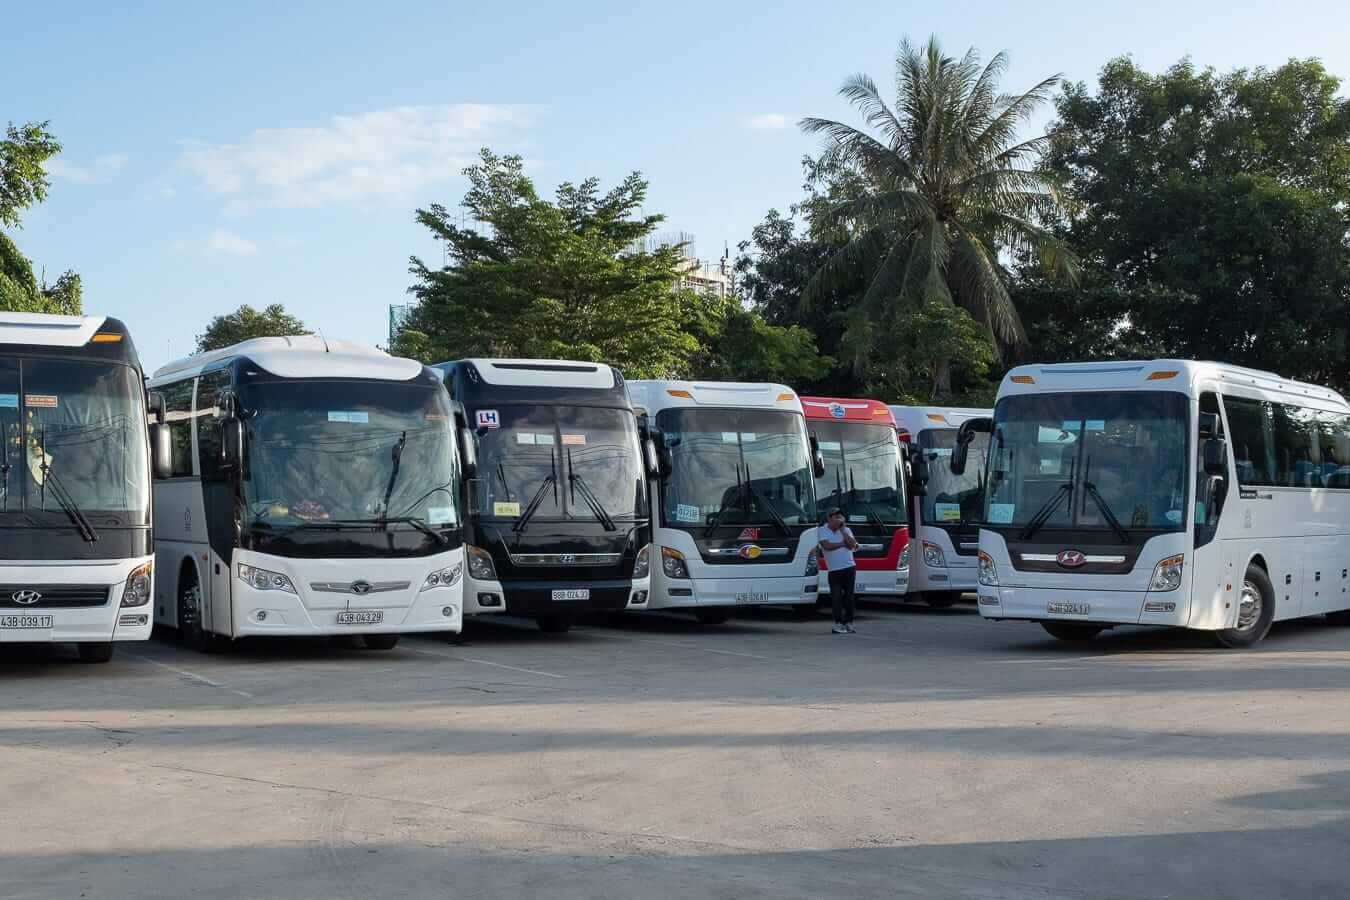 Hai Ba Trung bus depot: Hoi An bus station